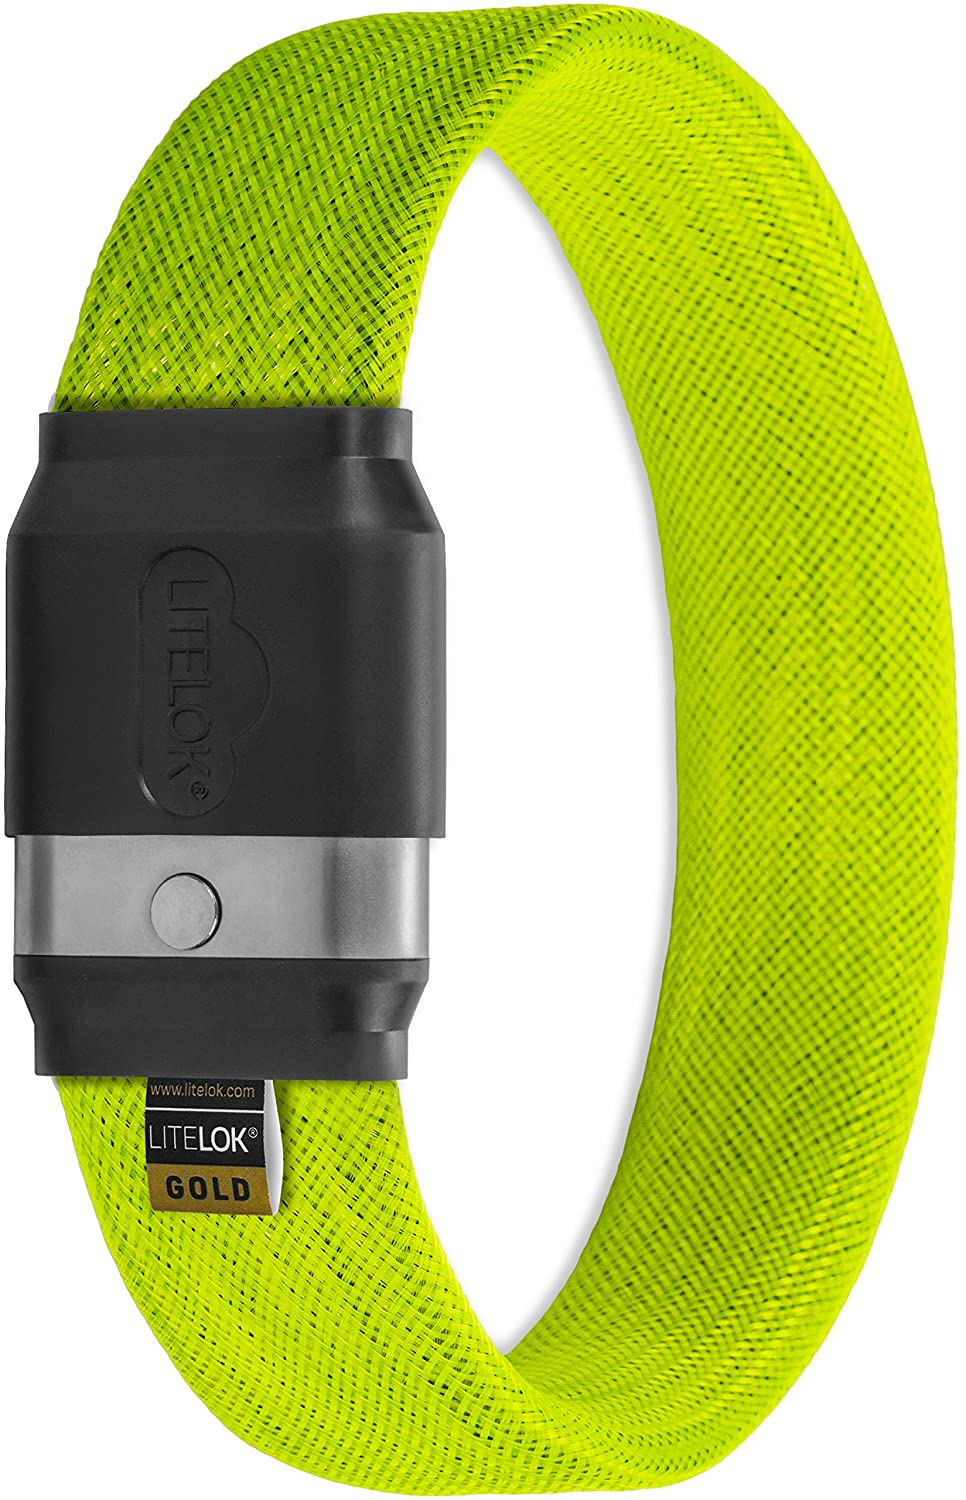 6be97525be08 LITELOK Gold Original Bike Lock - Lightweight   Flexible - Easy to Use -  High-Security - Sold Secure Gold (Boa Green)  Amazon.co.uk  Sports    Outdoors